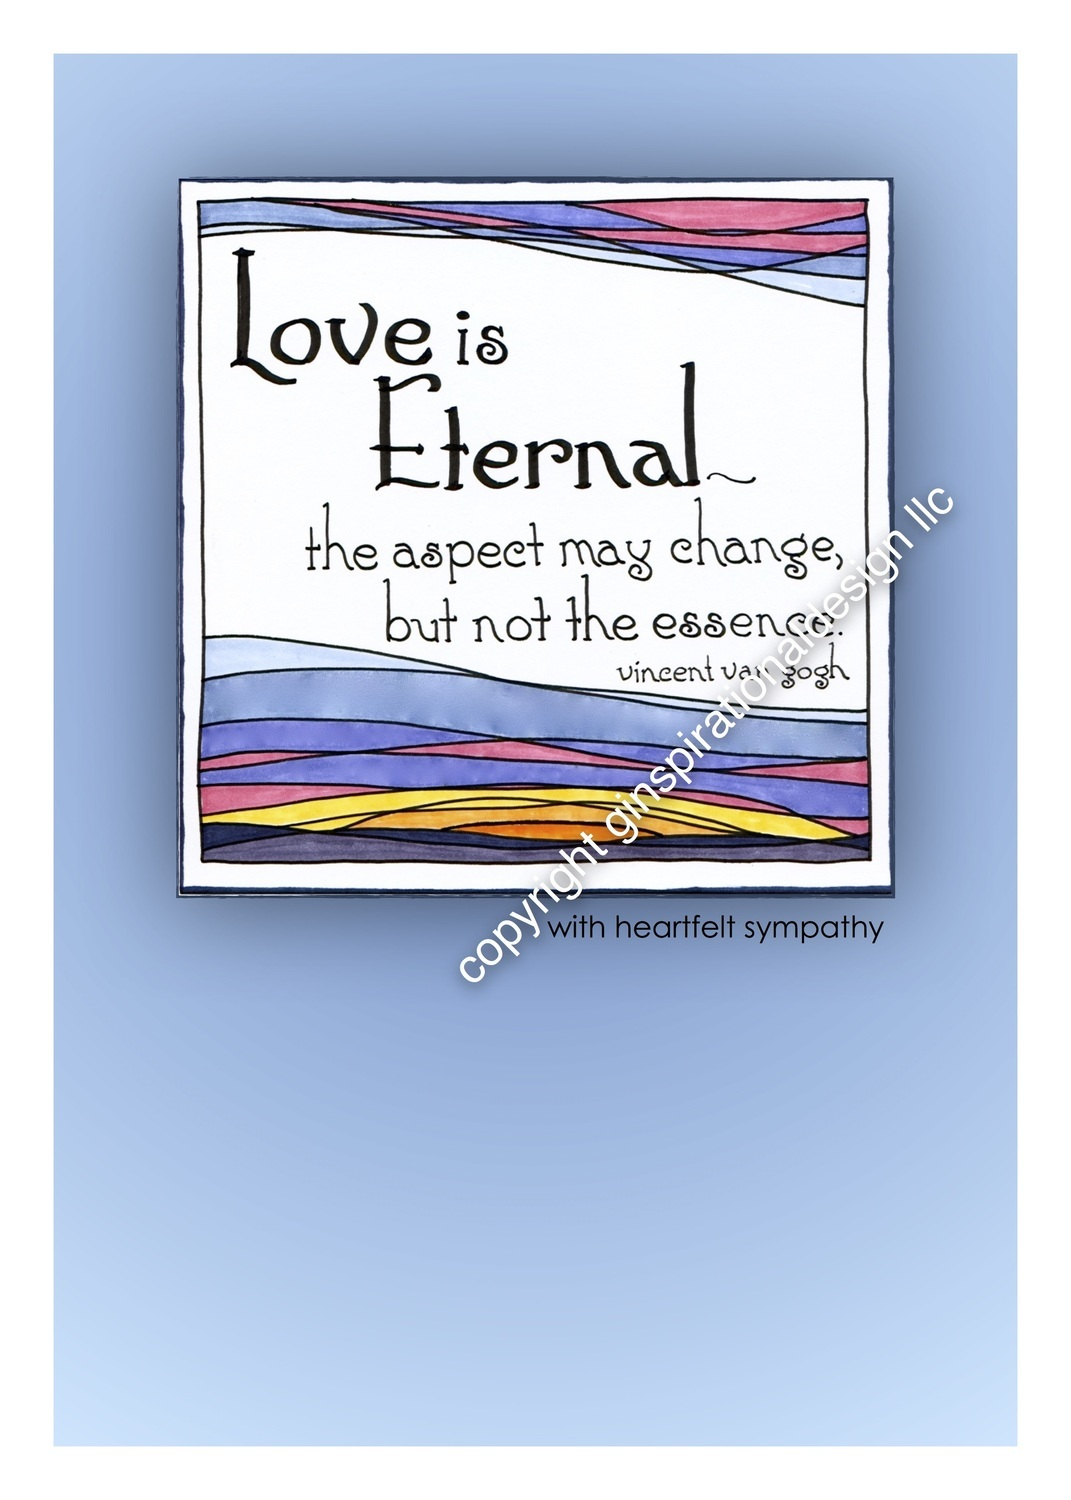 Love is eternal